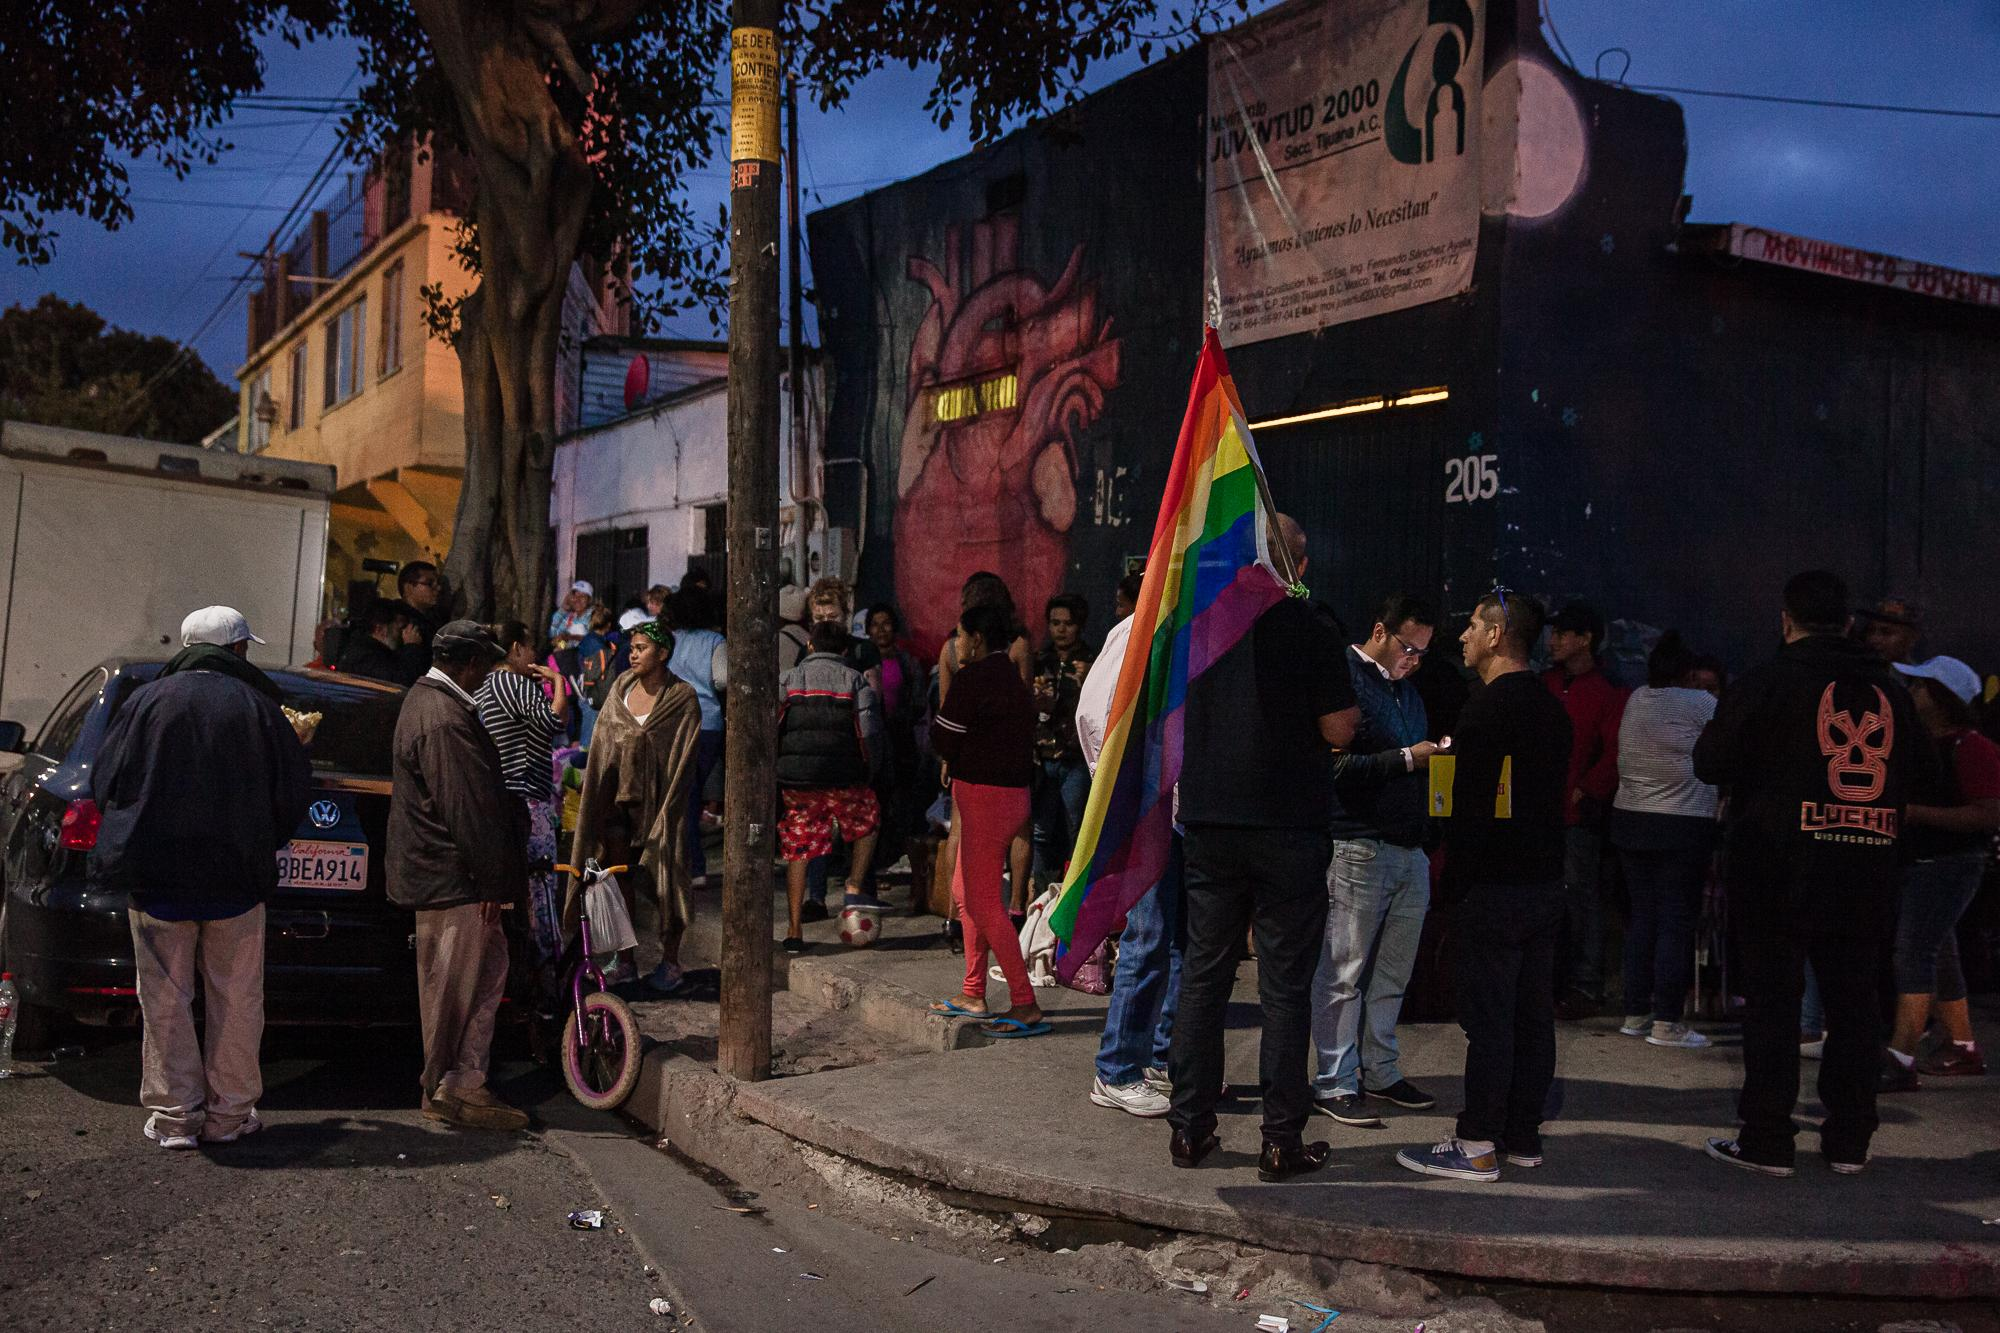 A small group of LGBTQ supporters showed up before the 4th bus arrived to show solidarity. After the bus arrived people stood outside of Juventud 2000 shelter in Tijuana, MX, on April 26, 2018.